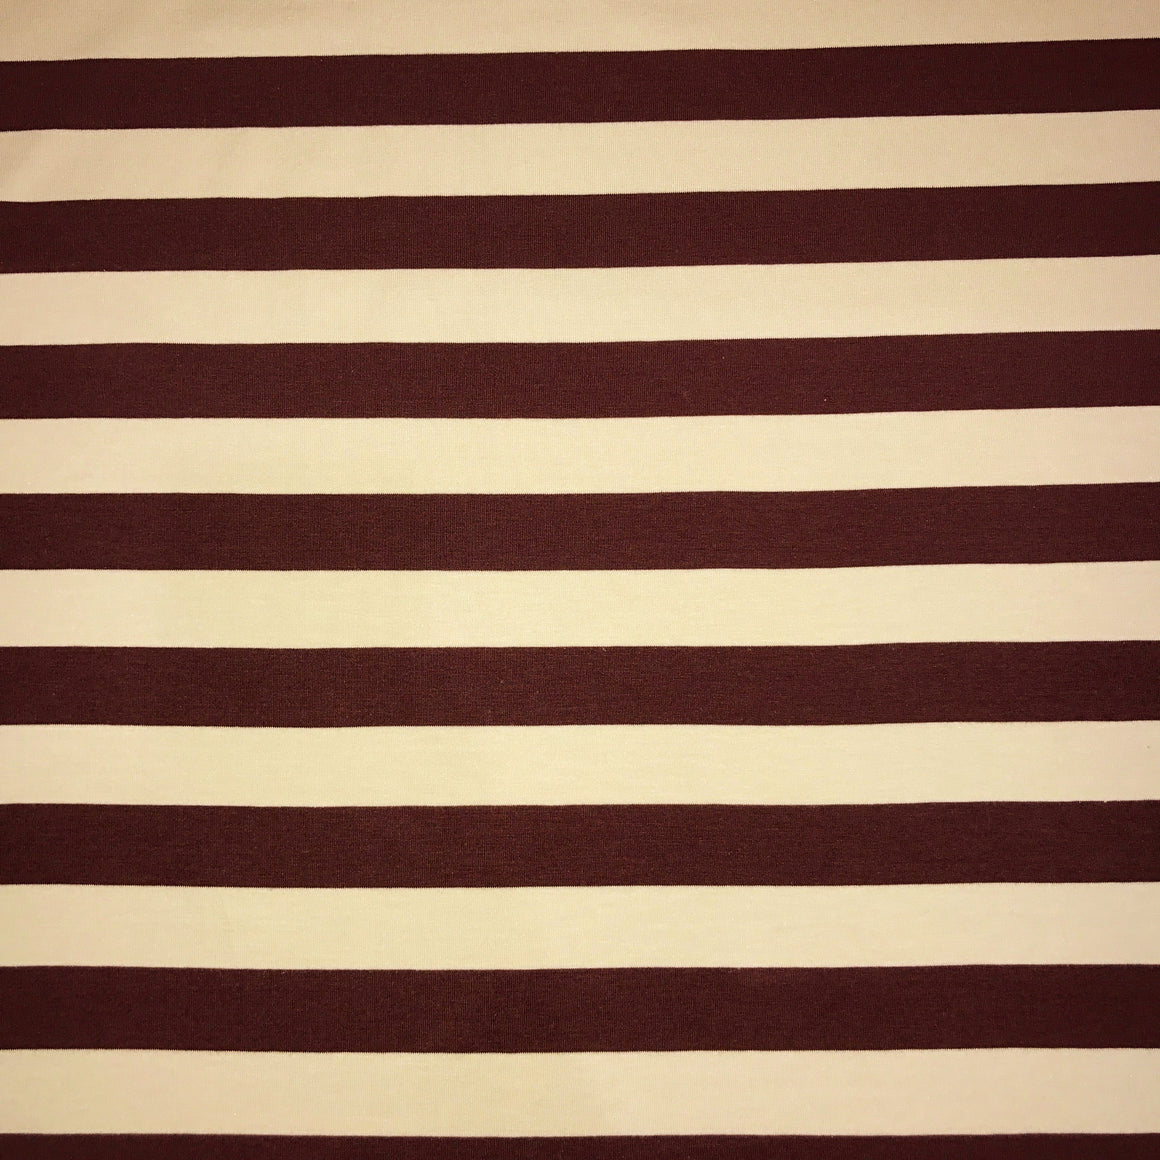 Maroon/Cream Wide Stripe Knit